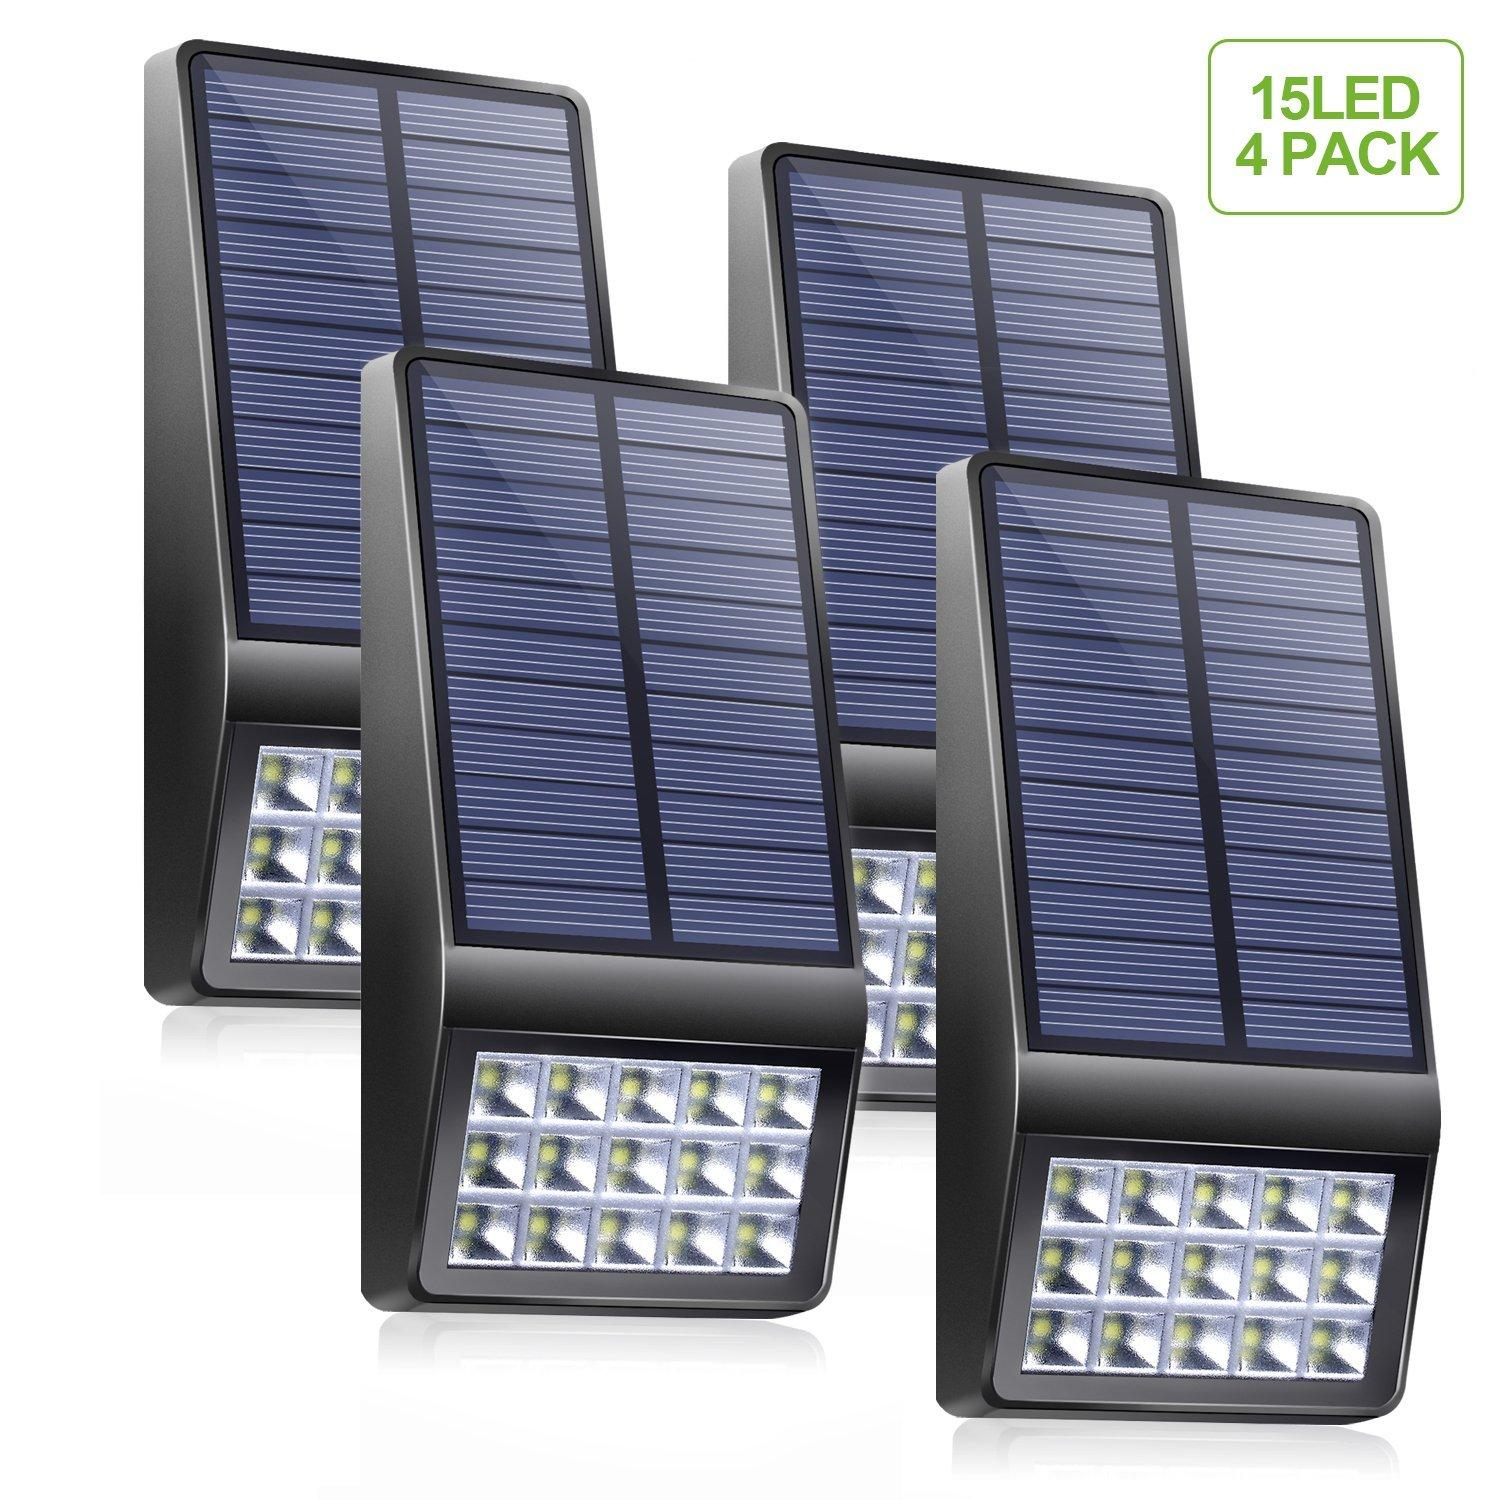 hight resolution of solar lights outdoor 4 pack 15 led super bright solar motion sensor lights with dim mode